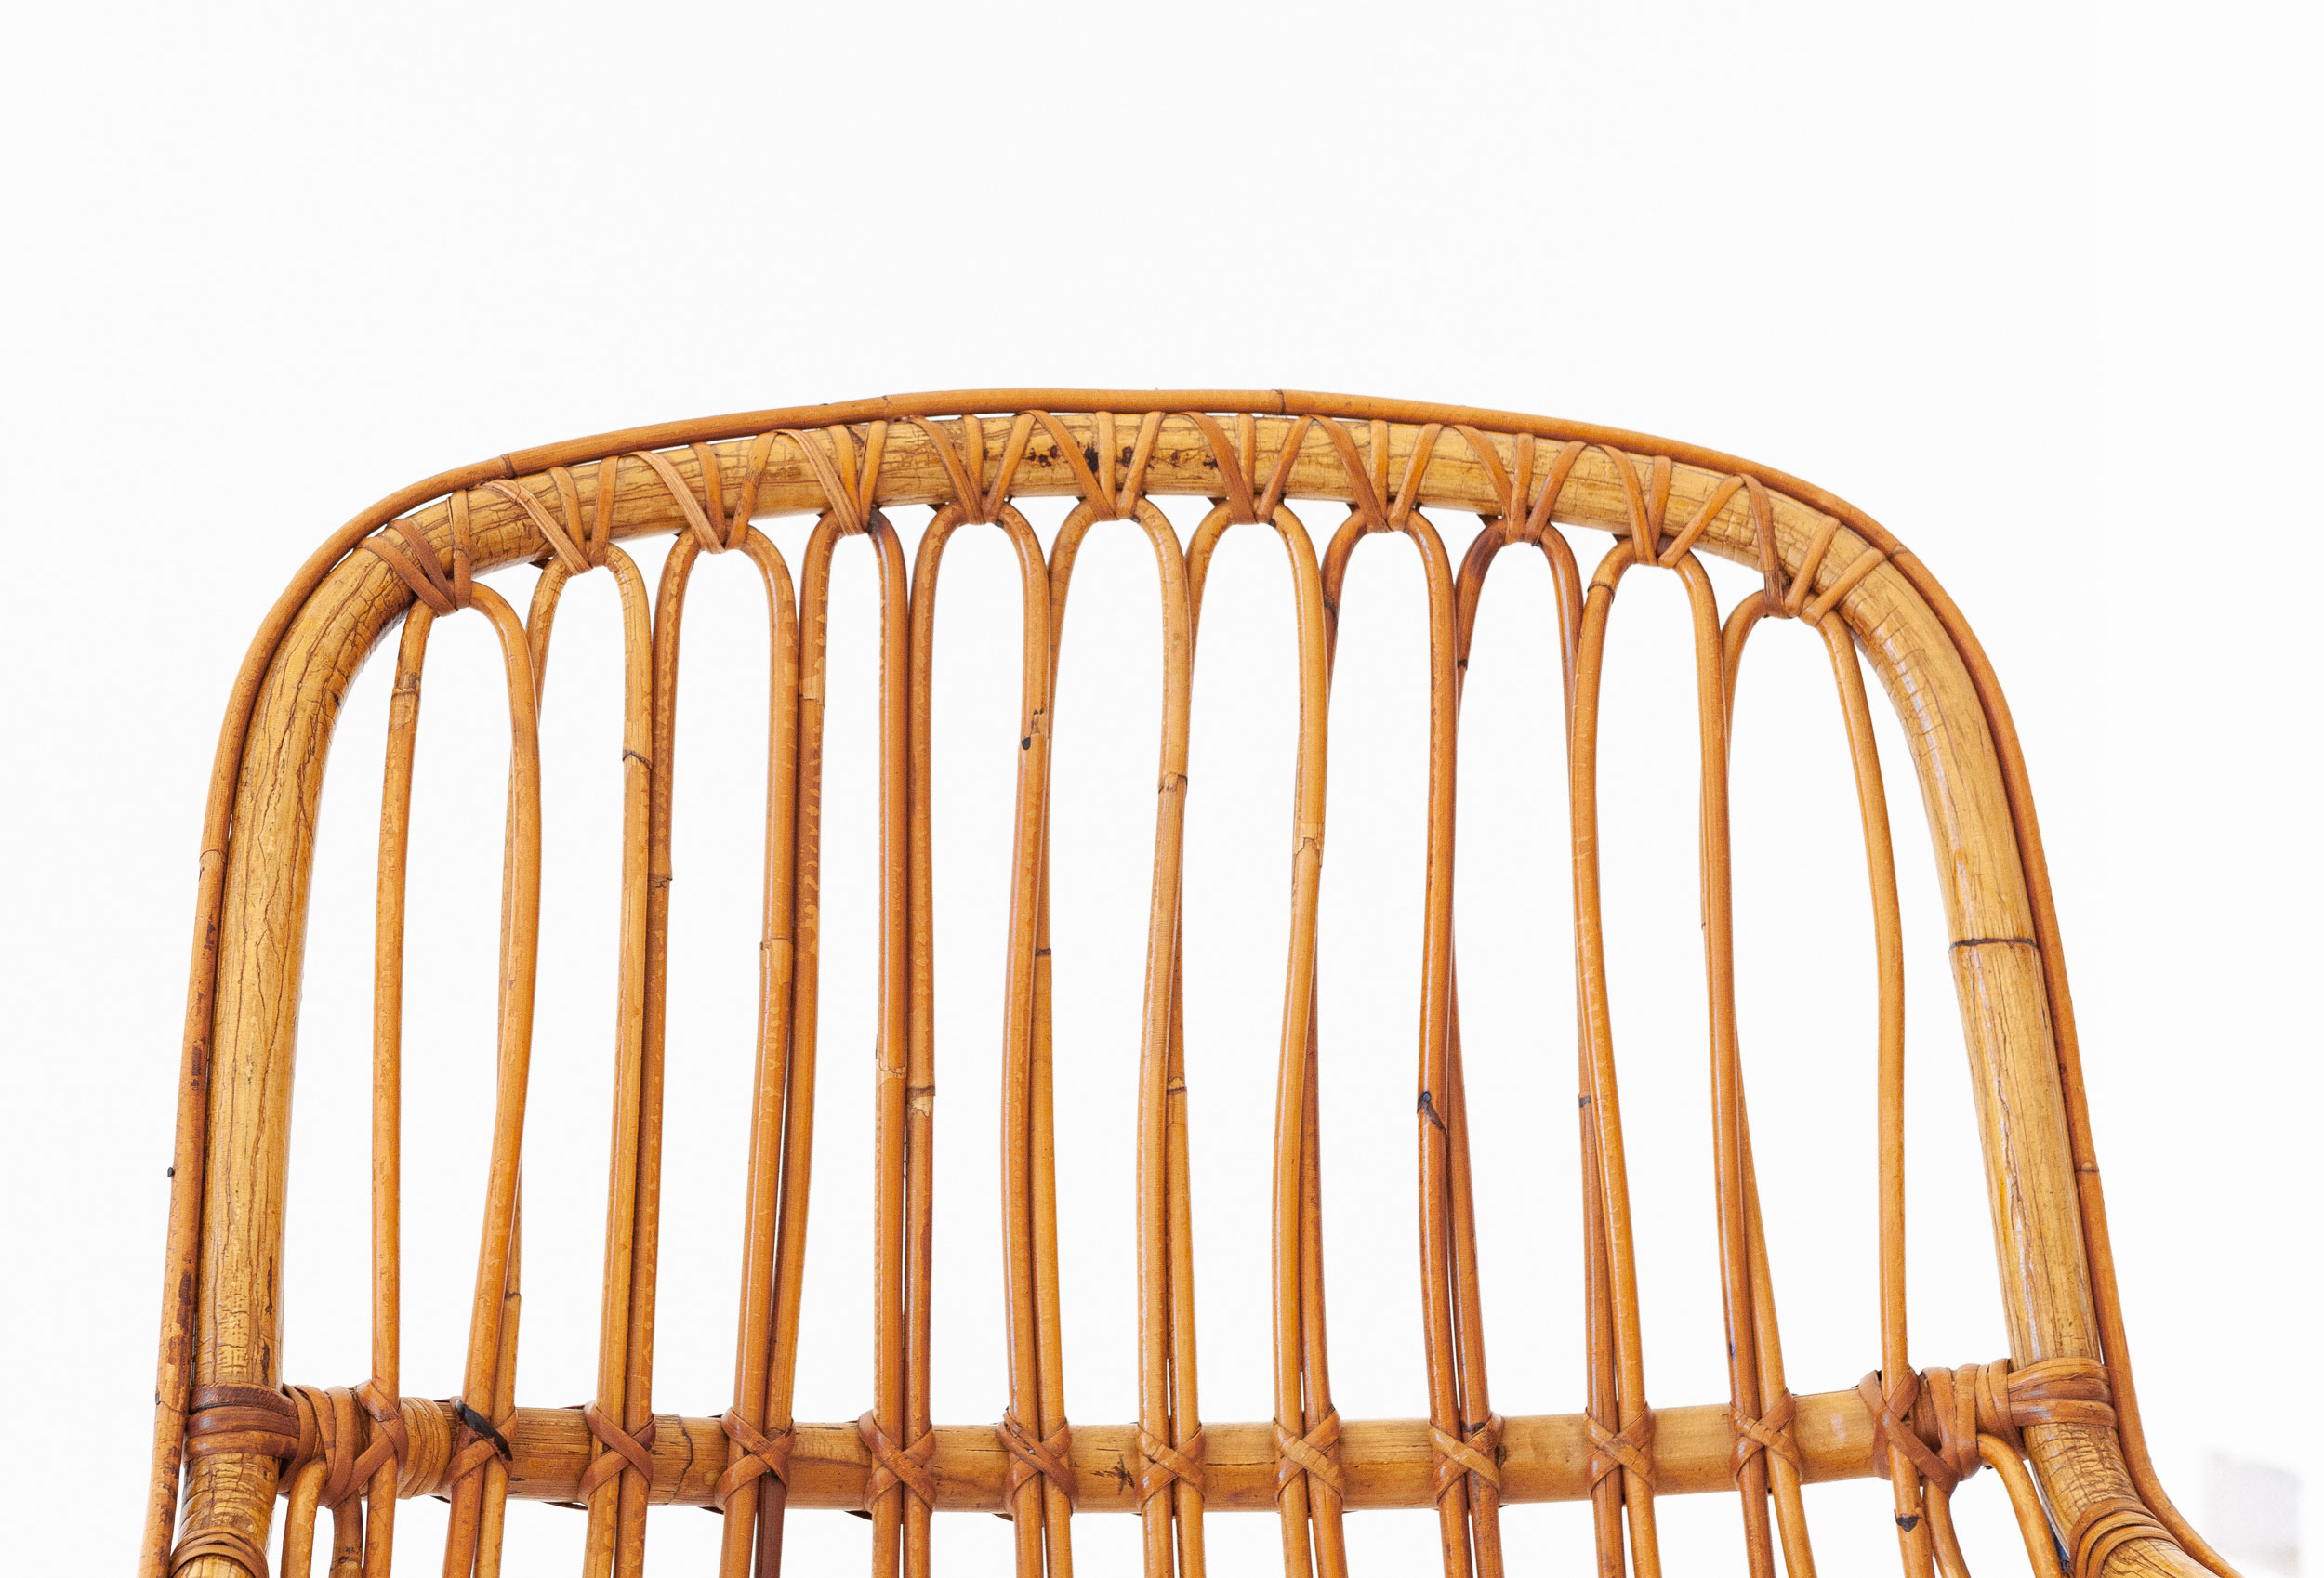 1950s-italian-iron-rattan-wicker-lounge-chairs-3-SE282